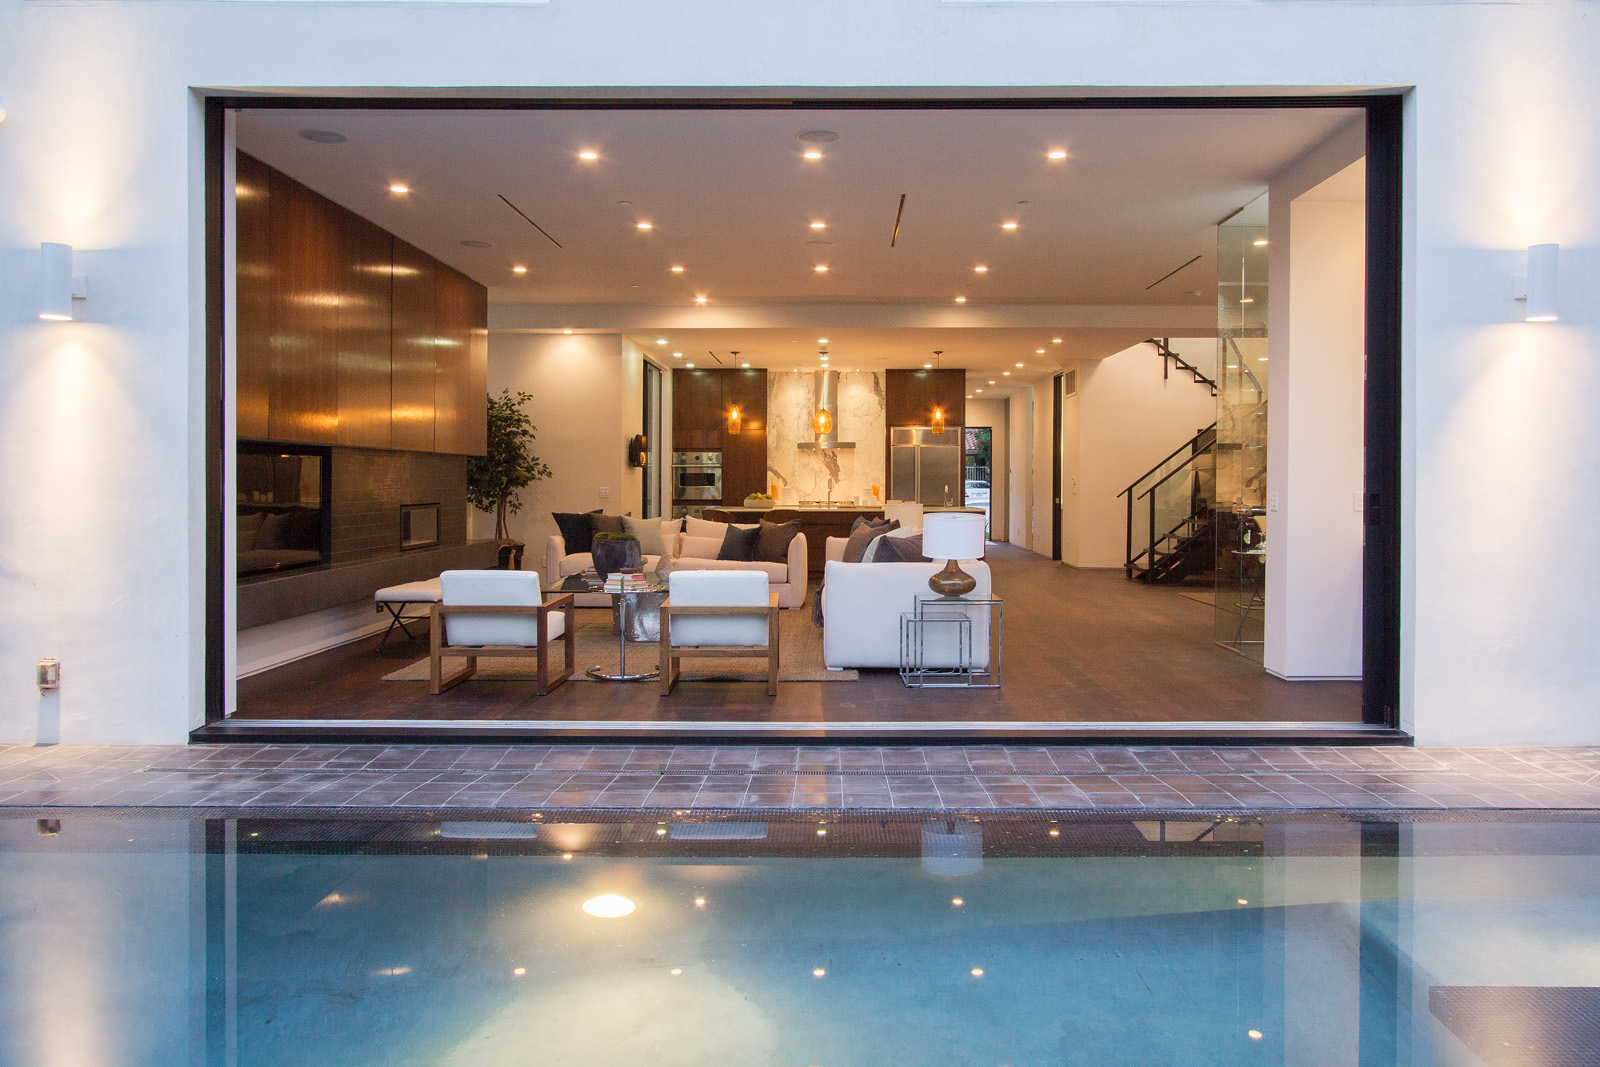 SOLD!  $2,925,000   128 S. Almont Drive